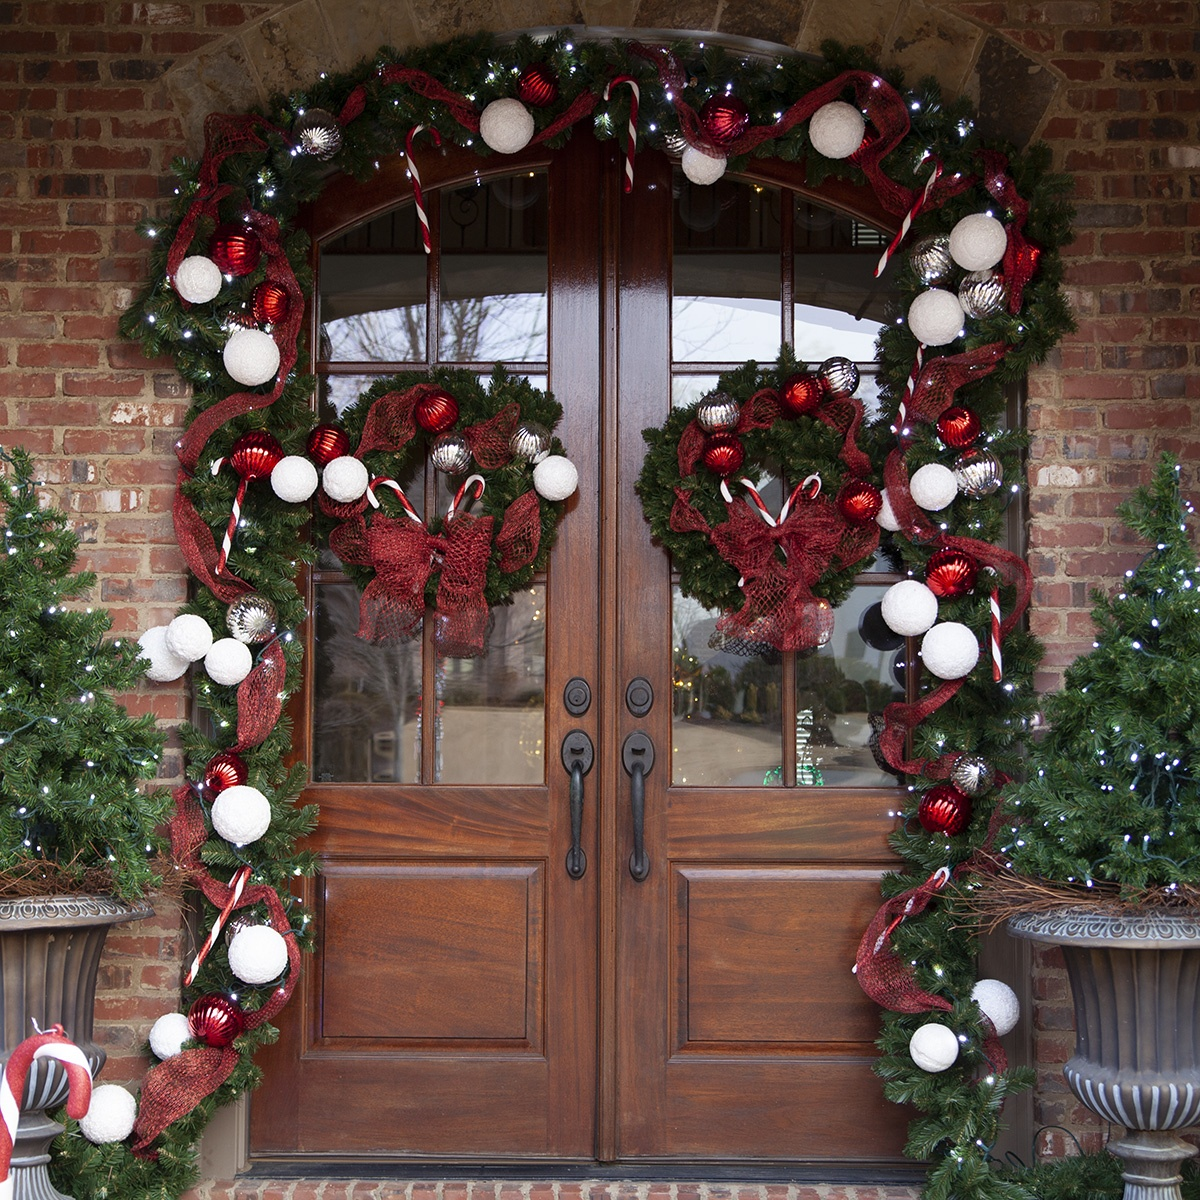 Christmas Garland DIY Door Decoration